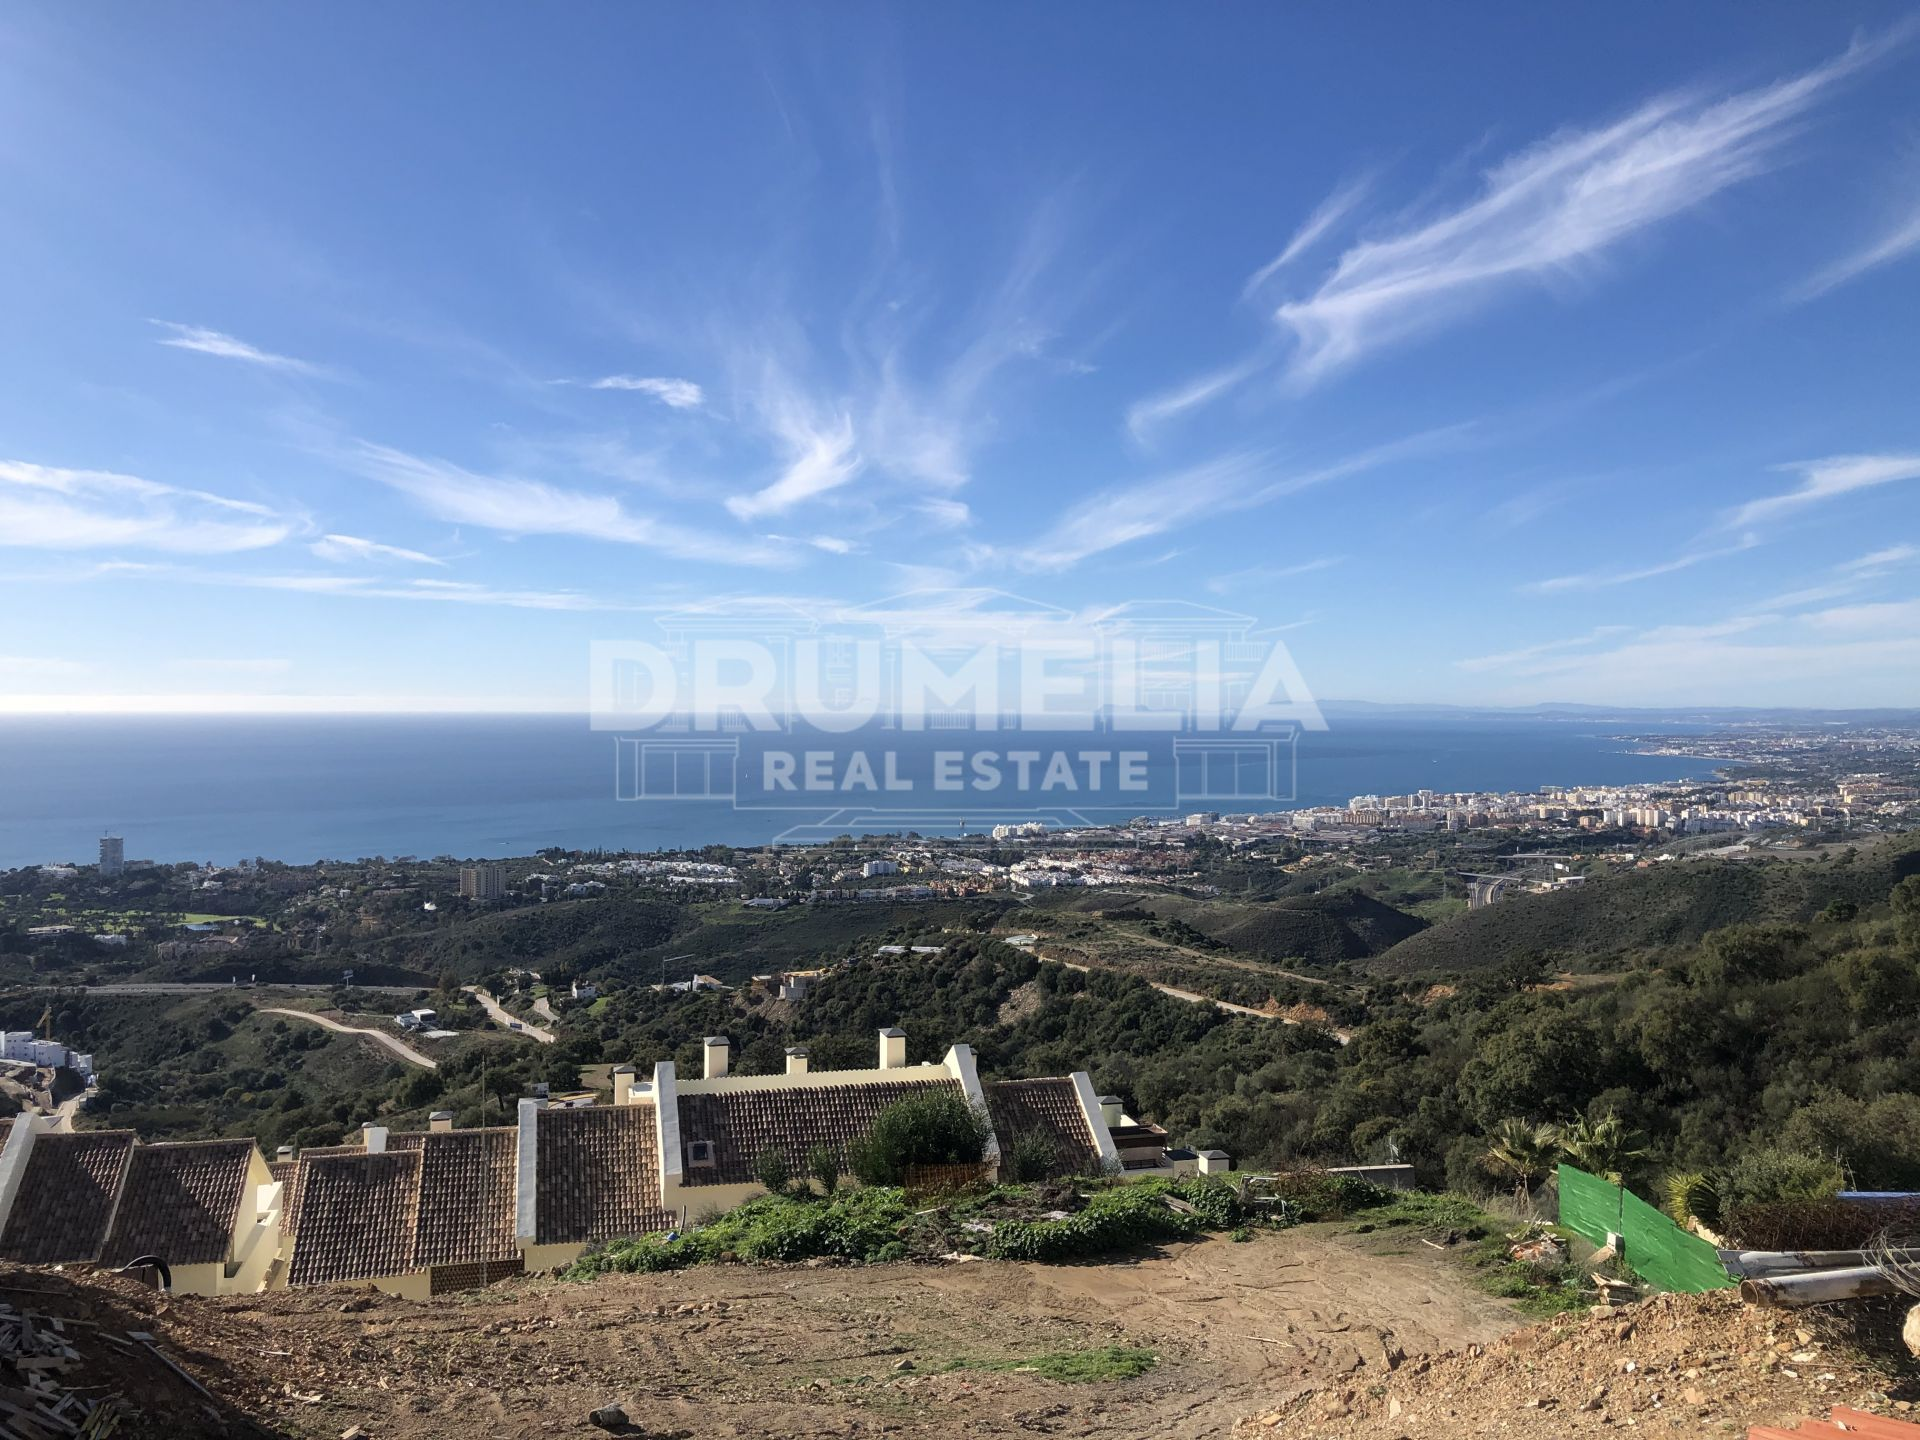 Marbella East, Excellent Plot with Stunning Panoramic Views, Los Altos de los Monteros, Marbella East (Marbella)